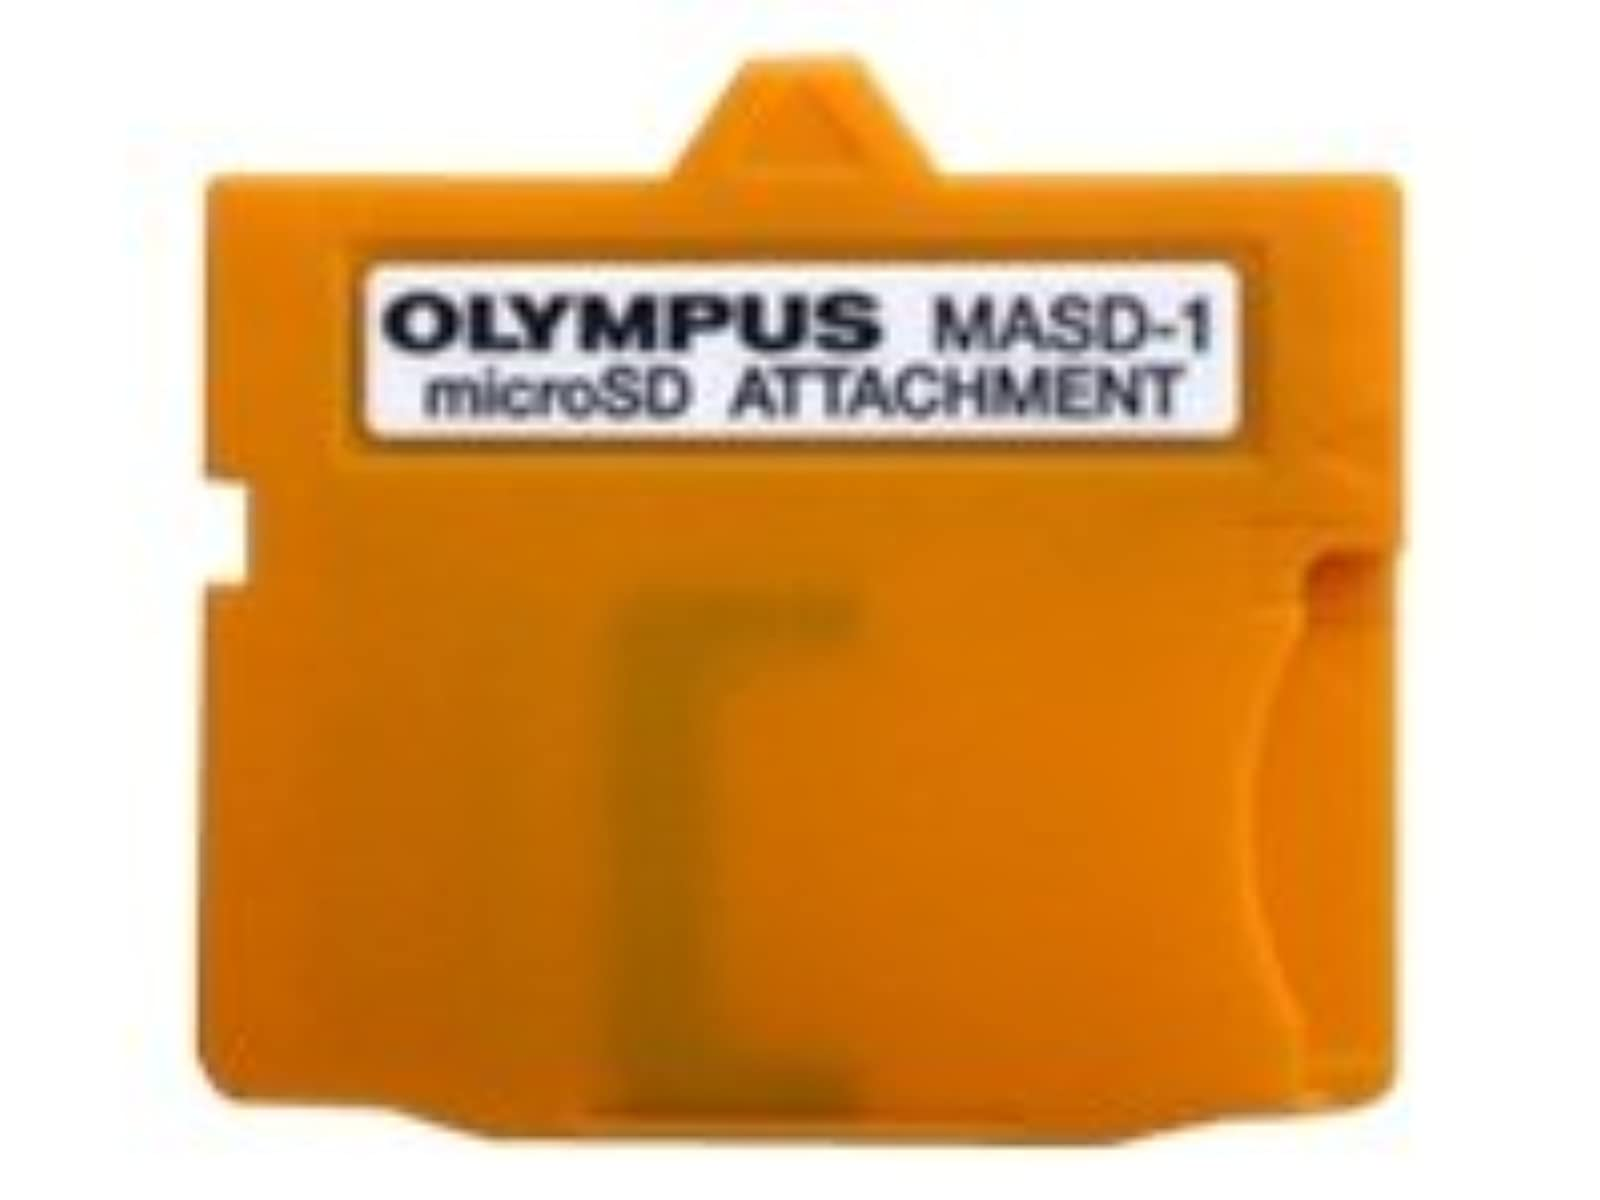 MASD-1 W Microsd Attachment Card